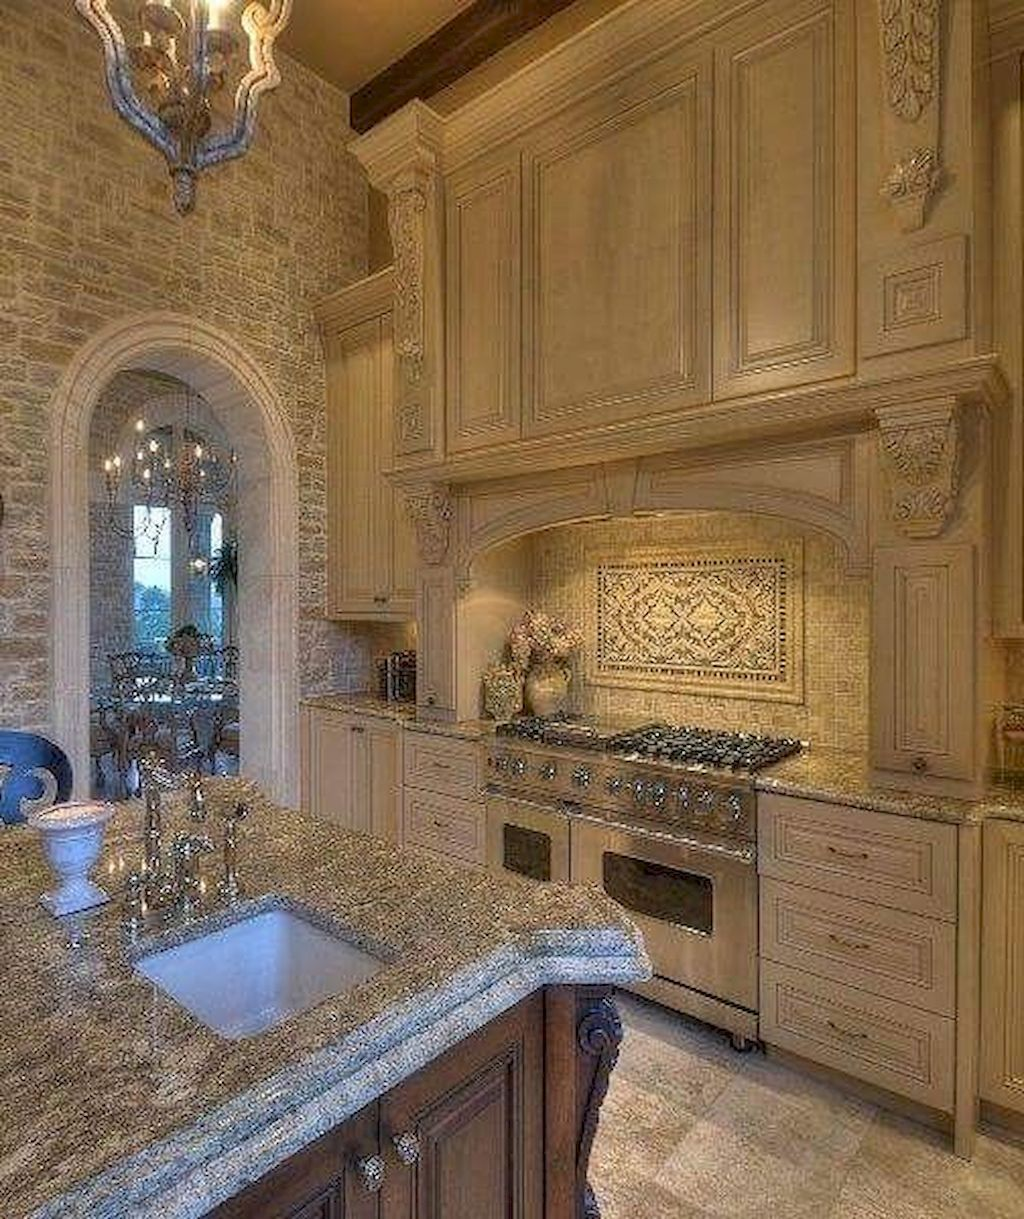 French Country Kitchen Cabinets: 36 French Country Style Kitchen Decorating Ideas